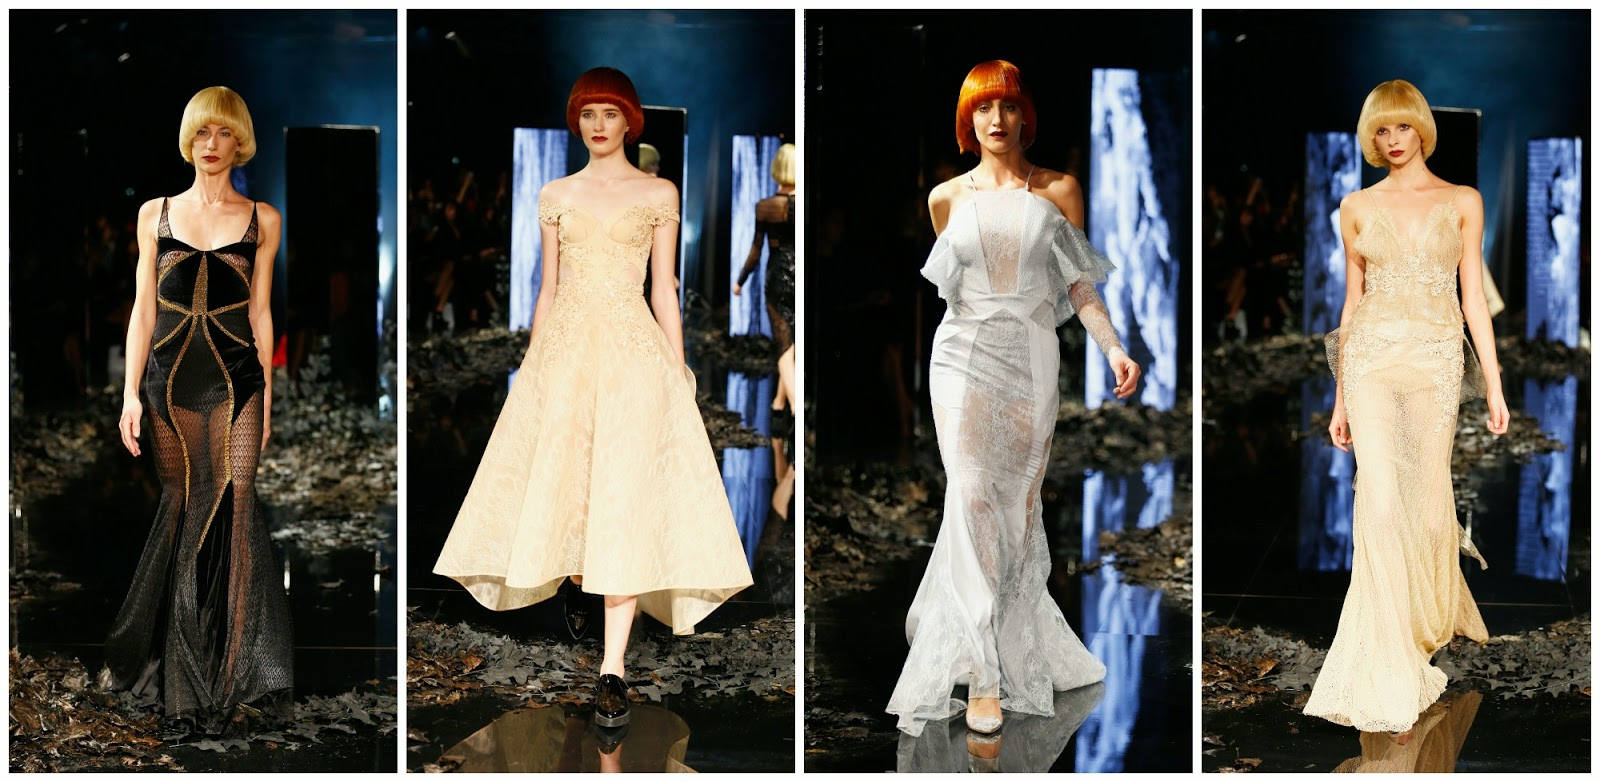 Fashion dust zeynep tosun a w haute couture show the for Haute couture translation